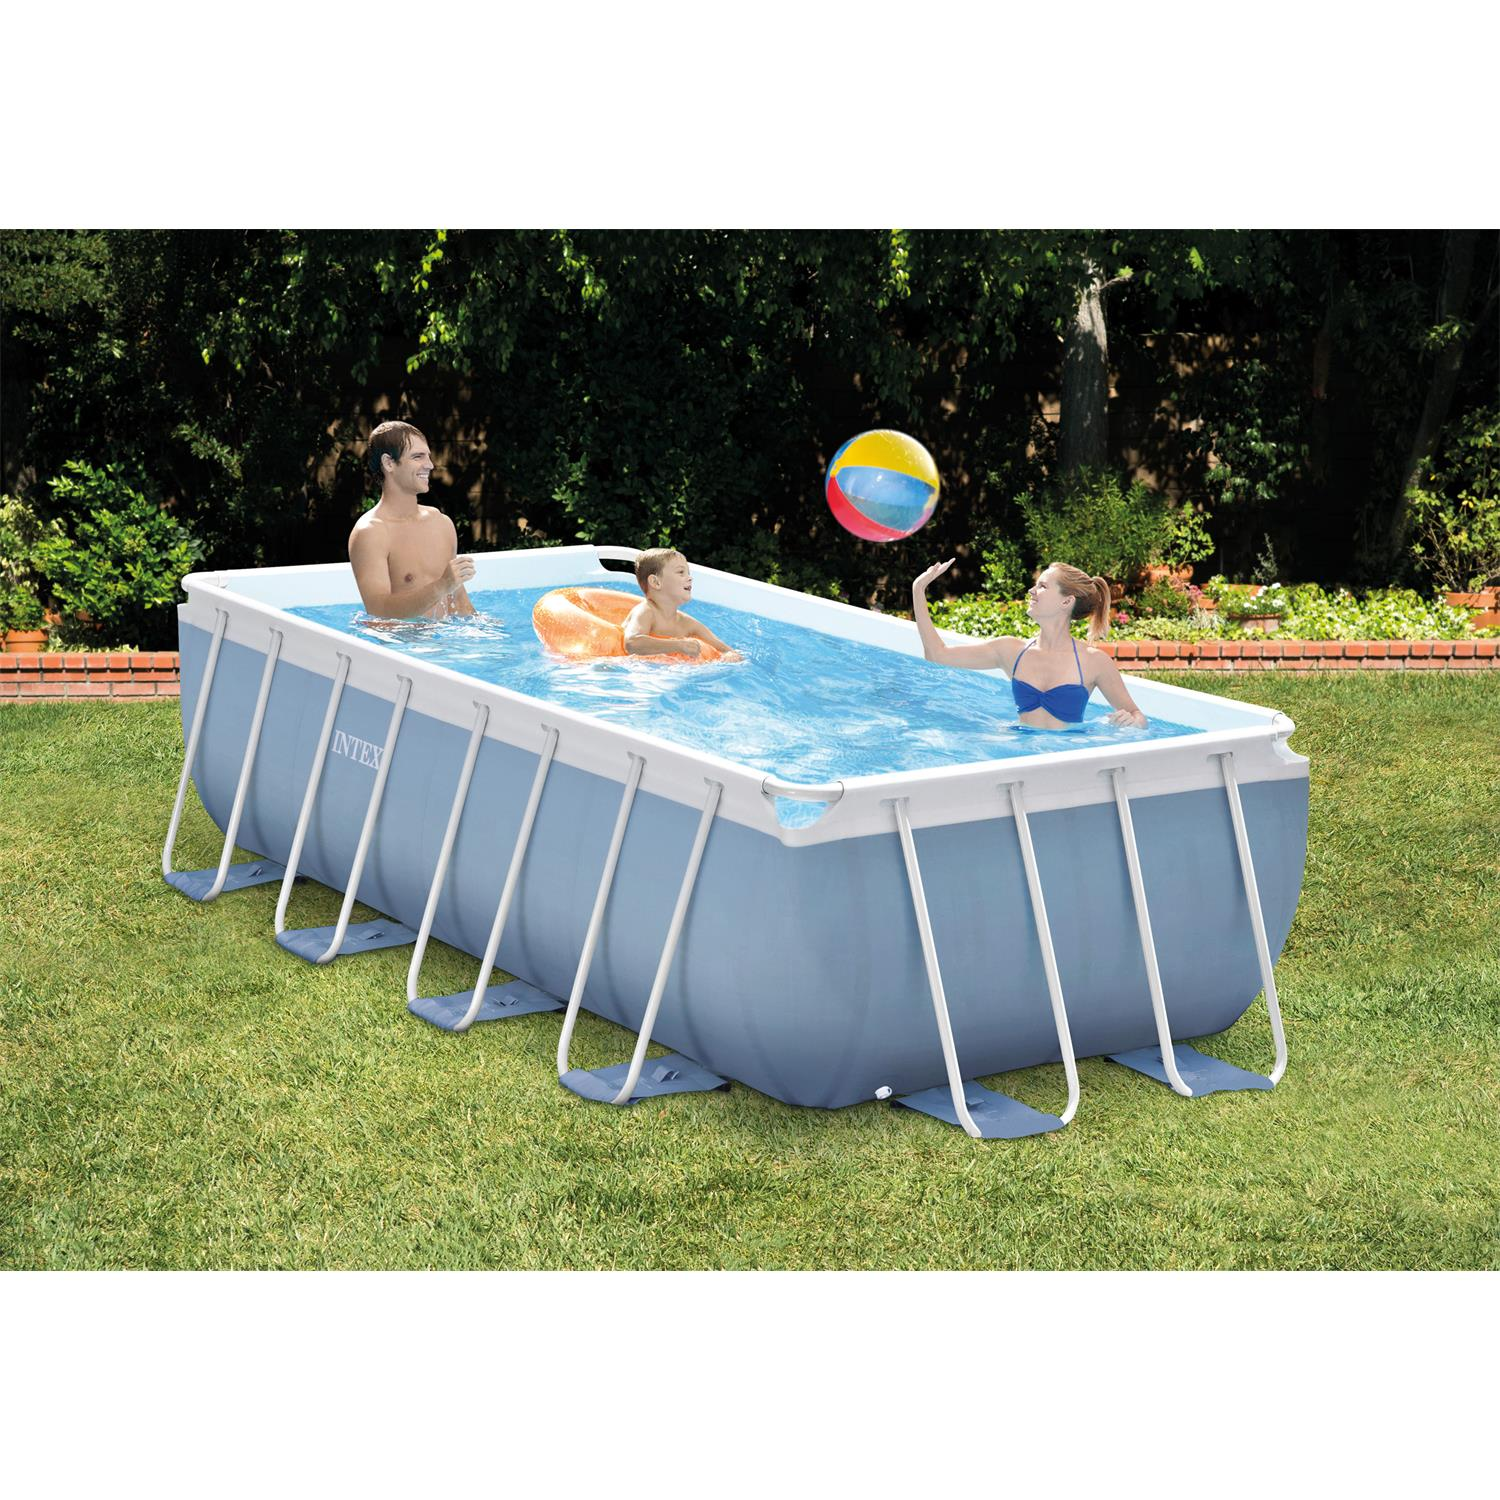 Abdeckplane Pool 400 Cm Intex 26776gn Prismframe Pool Set Inkl Pumpe 400 X 200 X